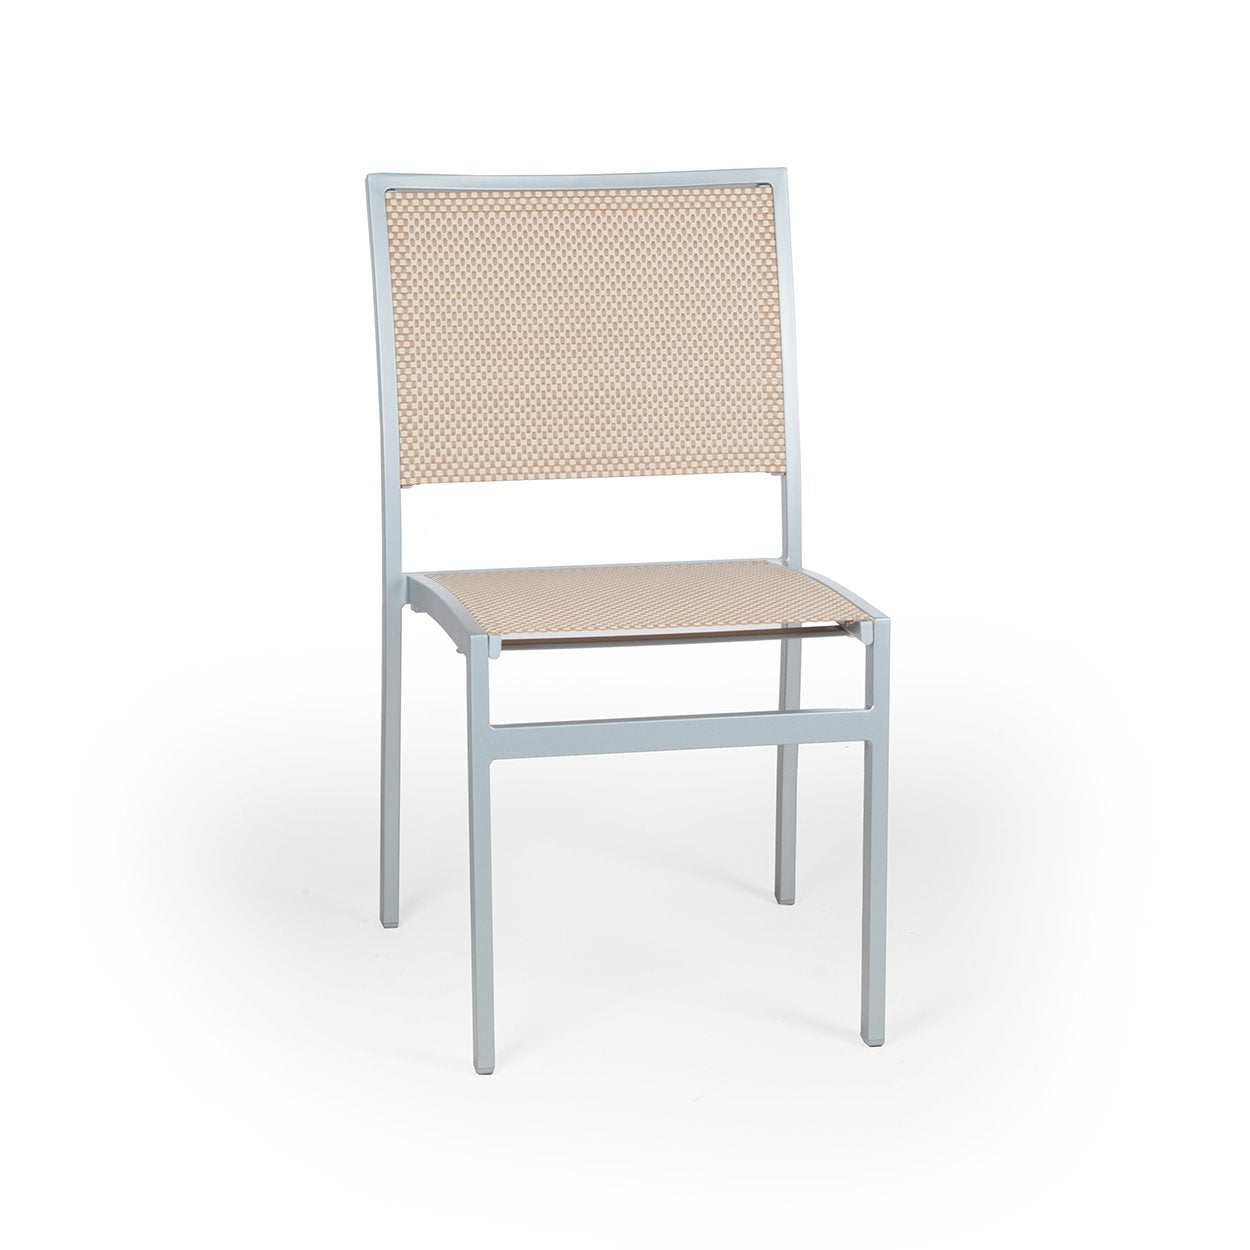 [FCC0201BGE] Flevoland side chair Sale